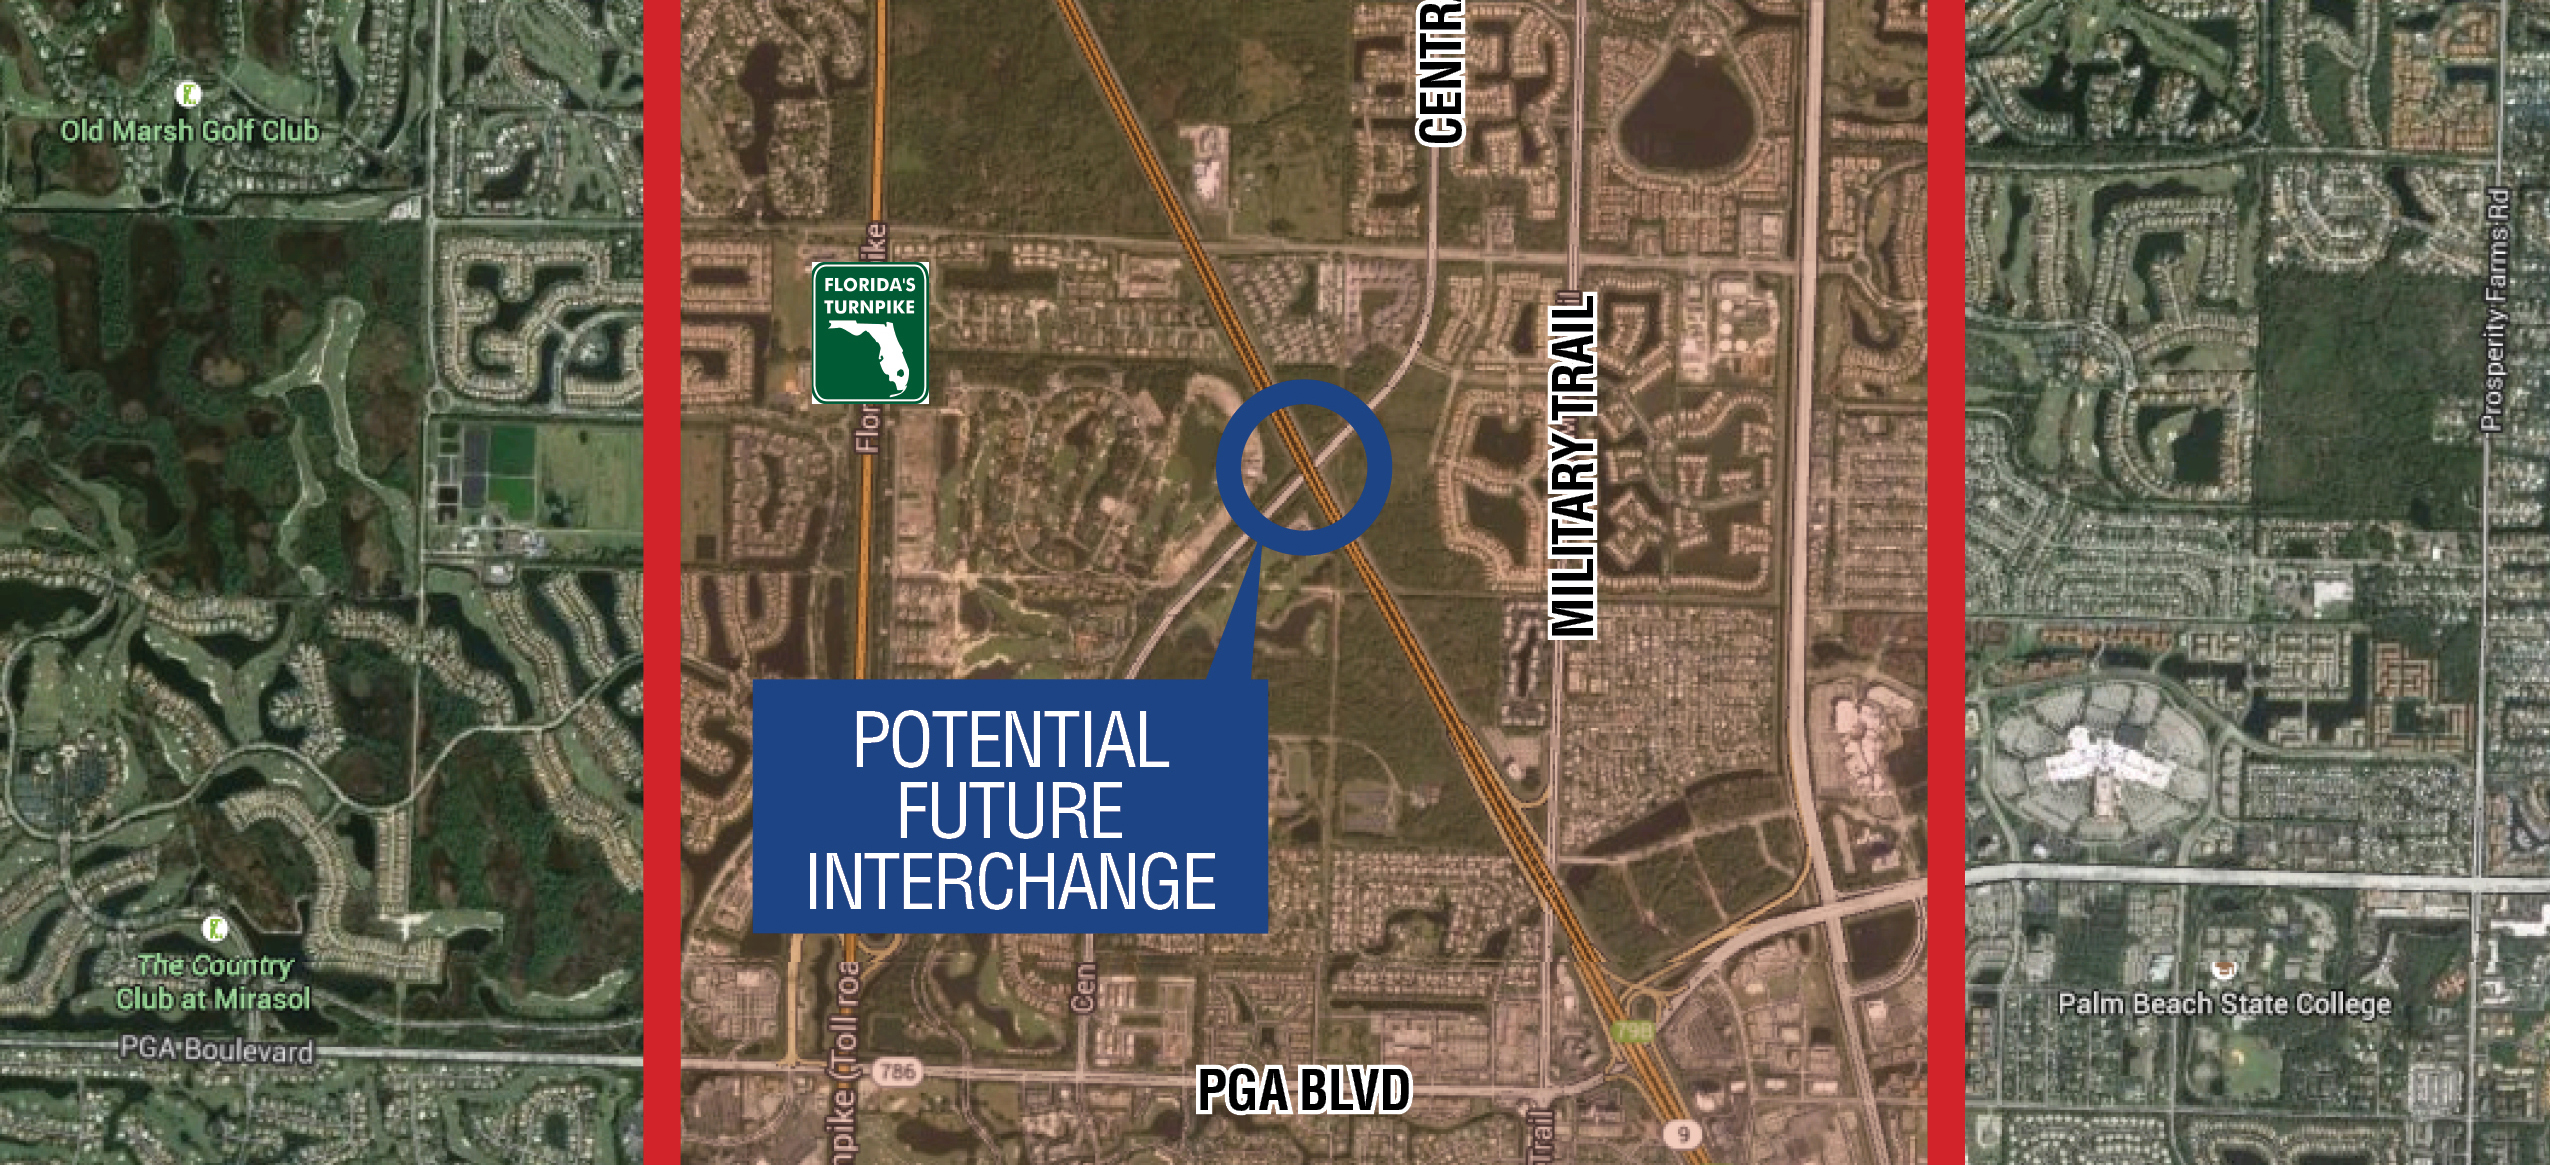 FDOT - State Road 9/I-95 at PGA Boulevard/Central Boulevard Project